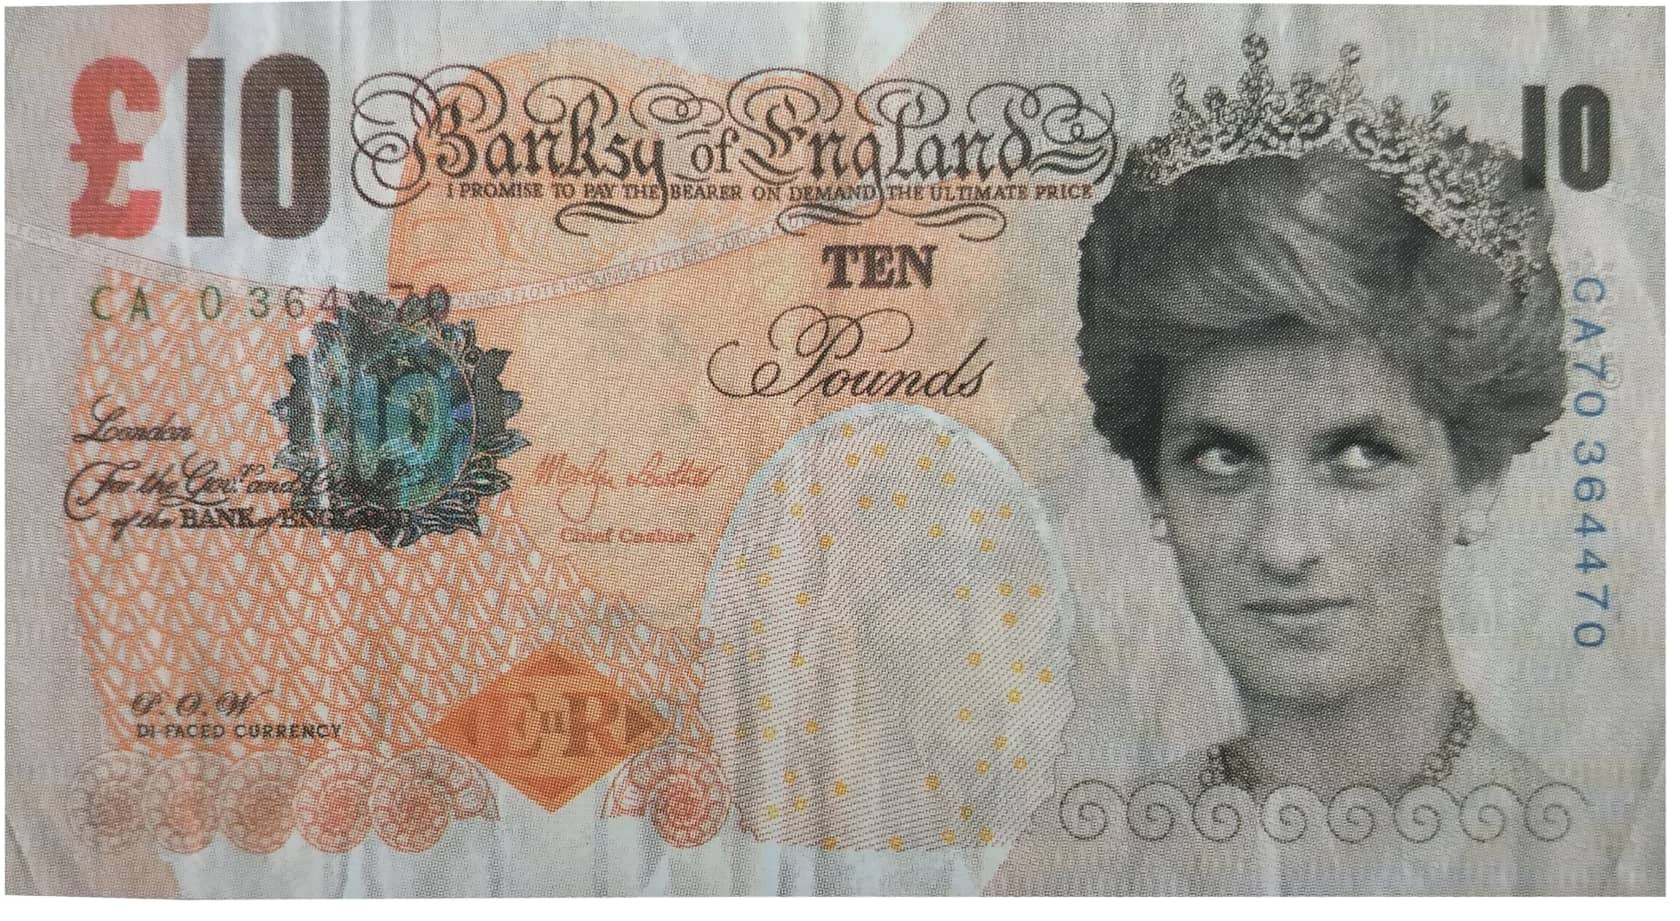 Banksy, Di-Faced Tenner Note (Ten Pounds), 2004